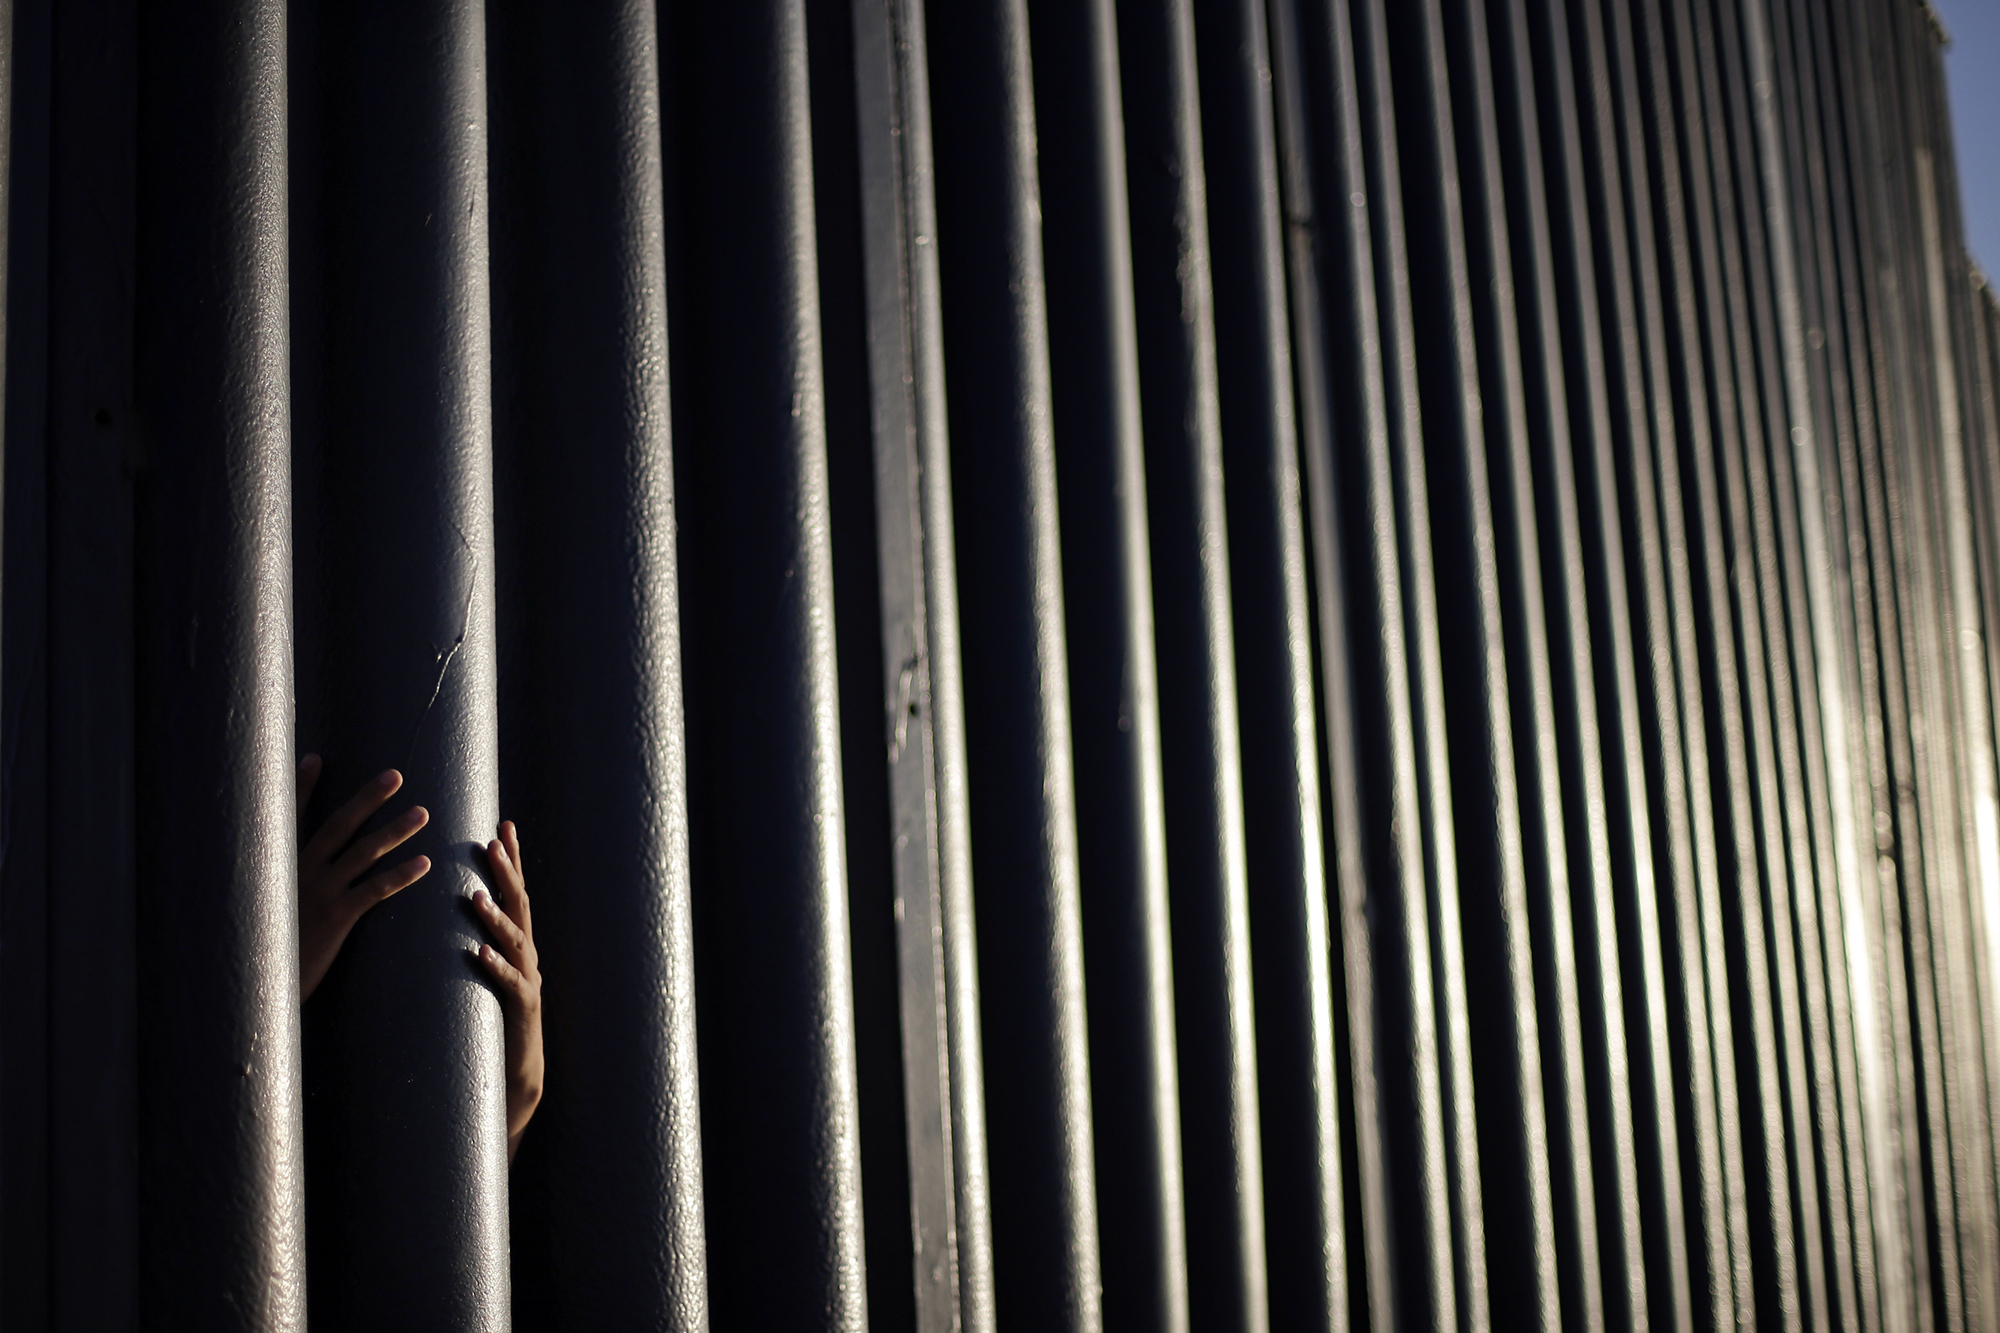 Daniel Zambrano, of Tijuana, Mexico, holds one of the bars that make up the border wall separating the U.S. and Mexico where the border meets the Pacific Ocean in San Diego, on June 13, 2013.